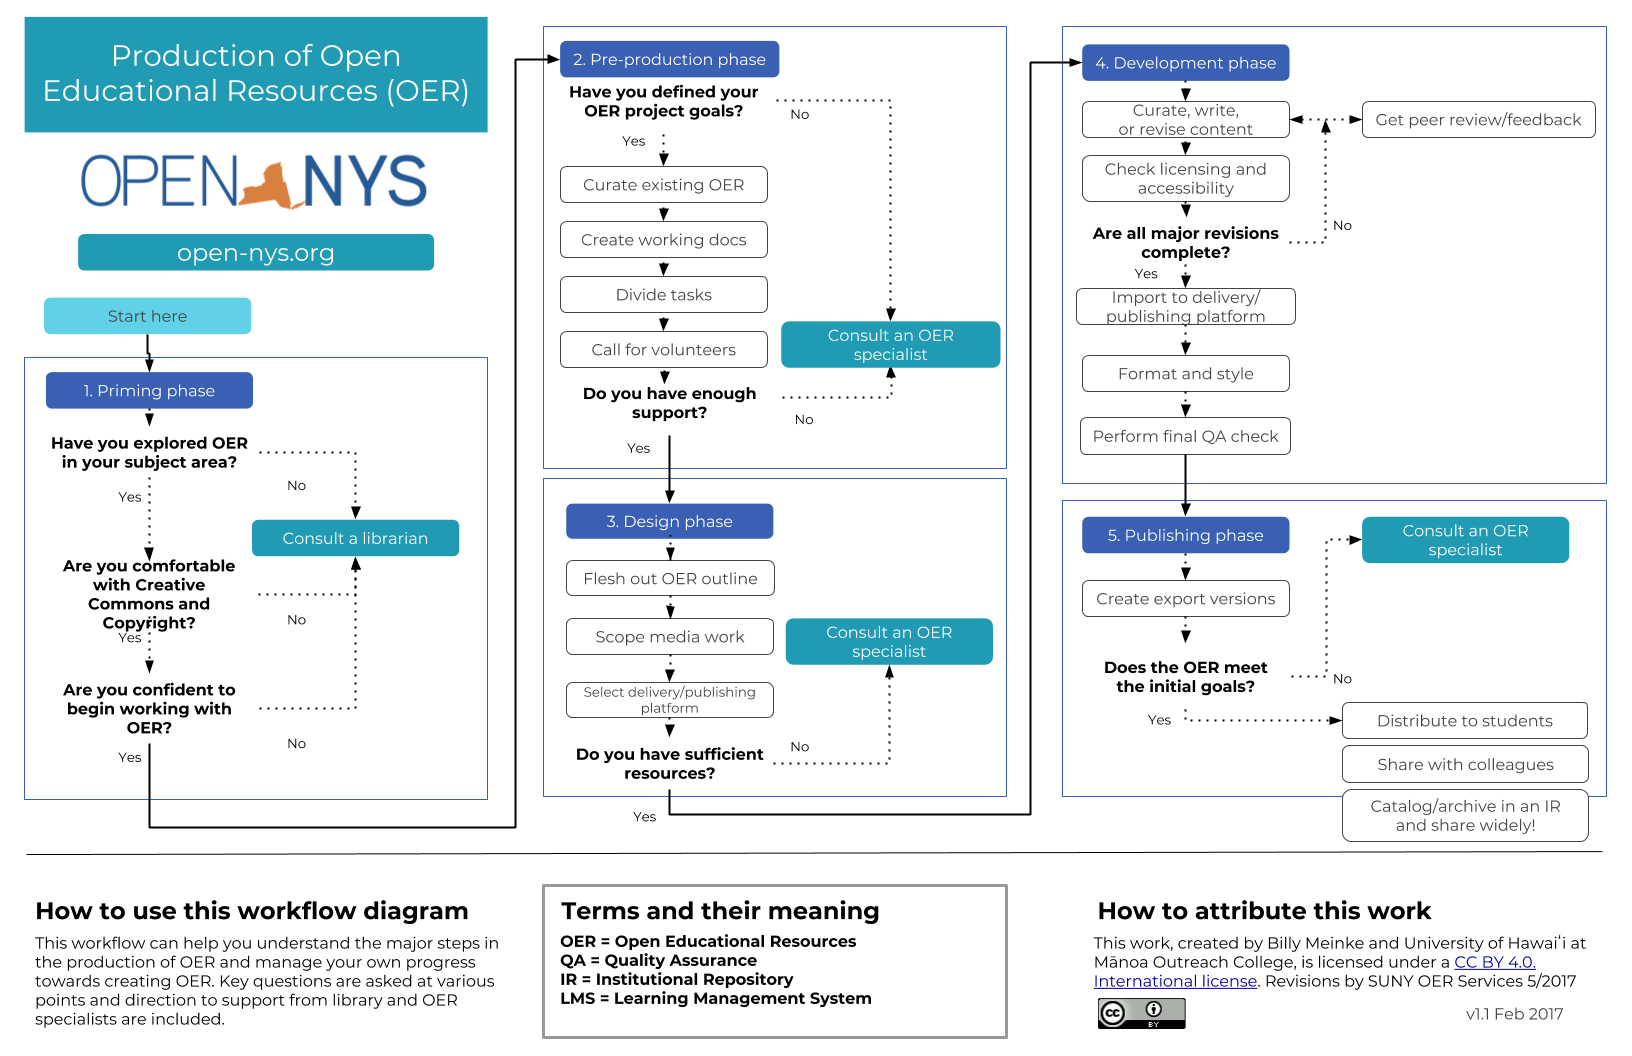 Creating New OER Flow Chart Image - Open-NYS